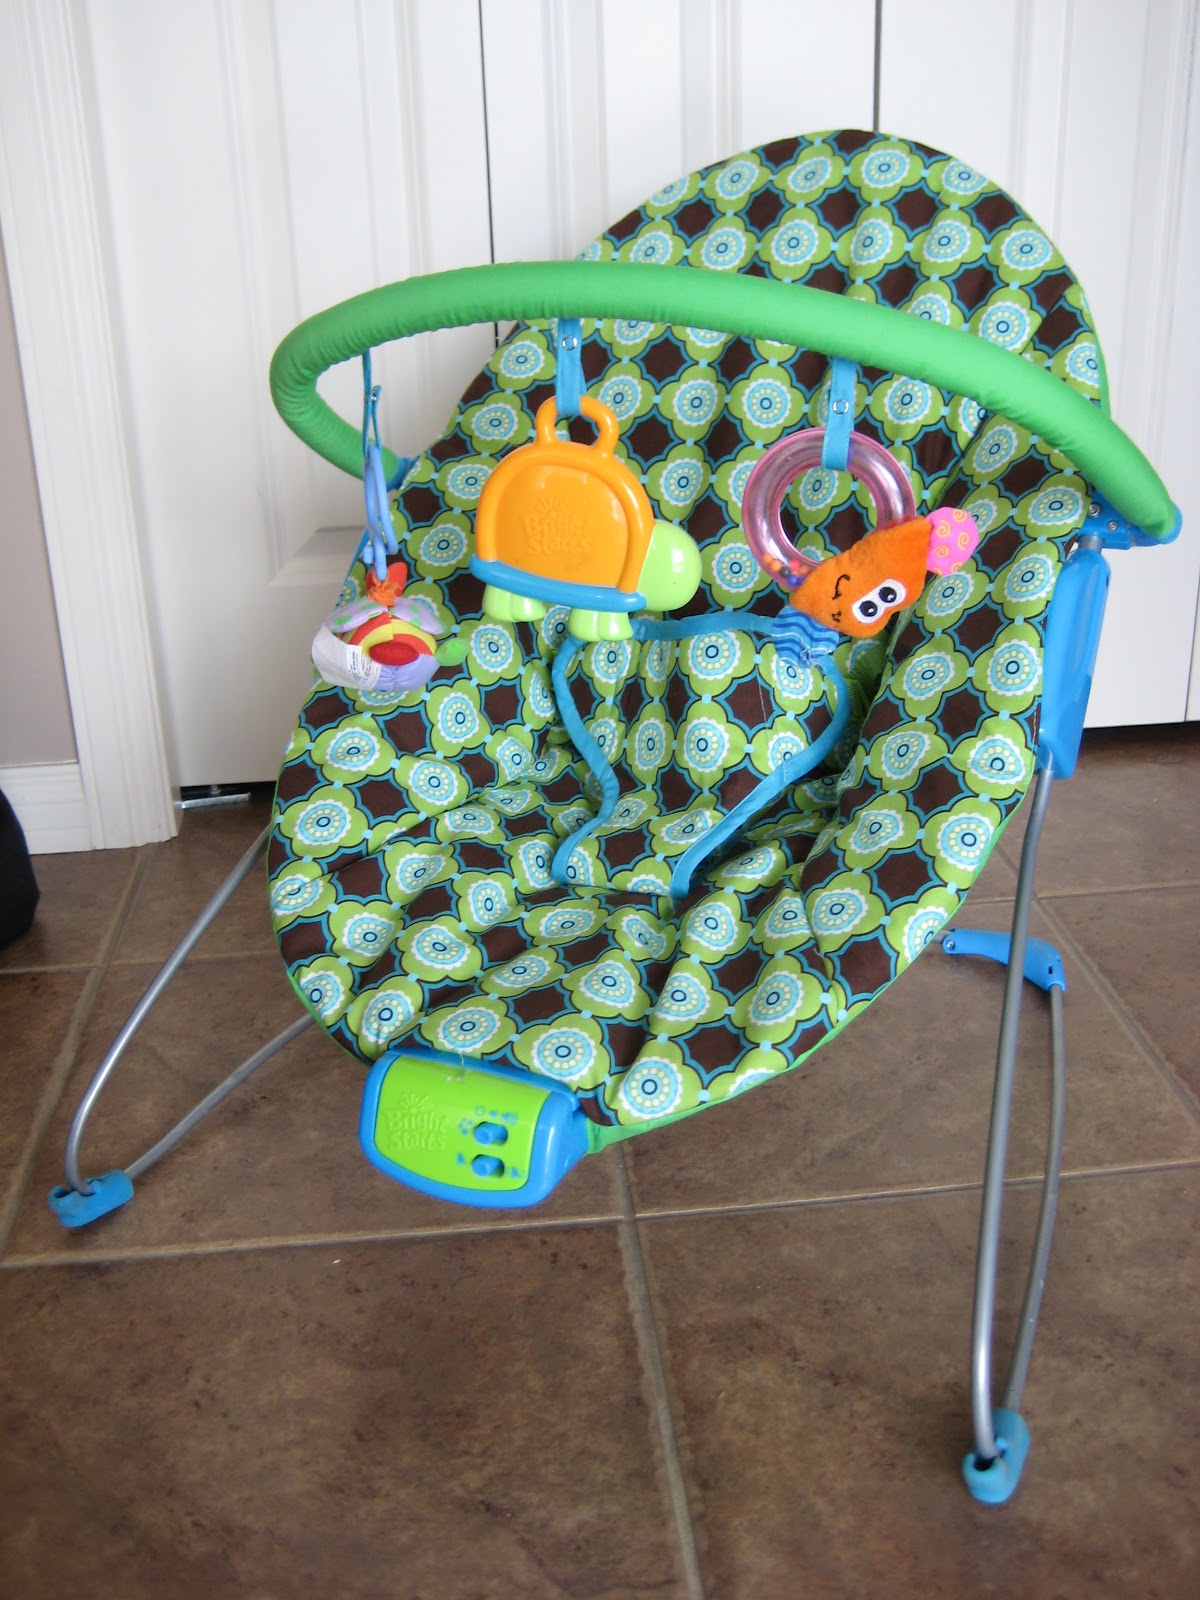 Bouncy Chair Laura Thoughts Bouncy Chair Re Cover 1 Of 3